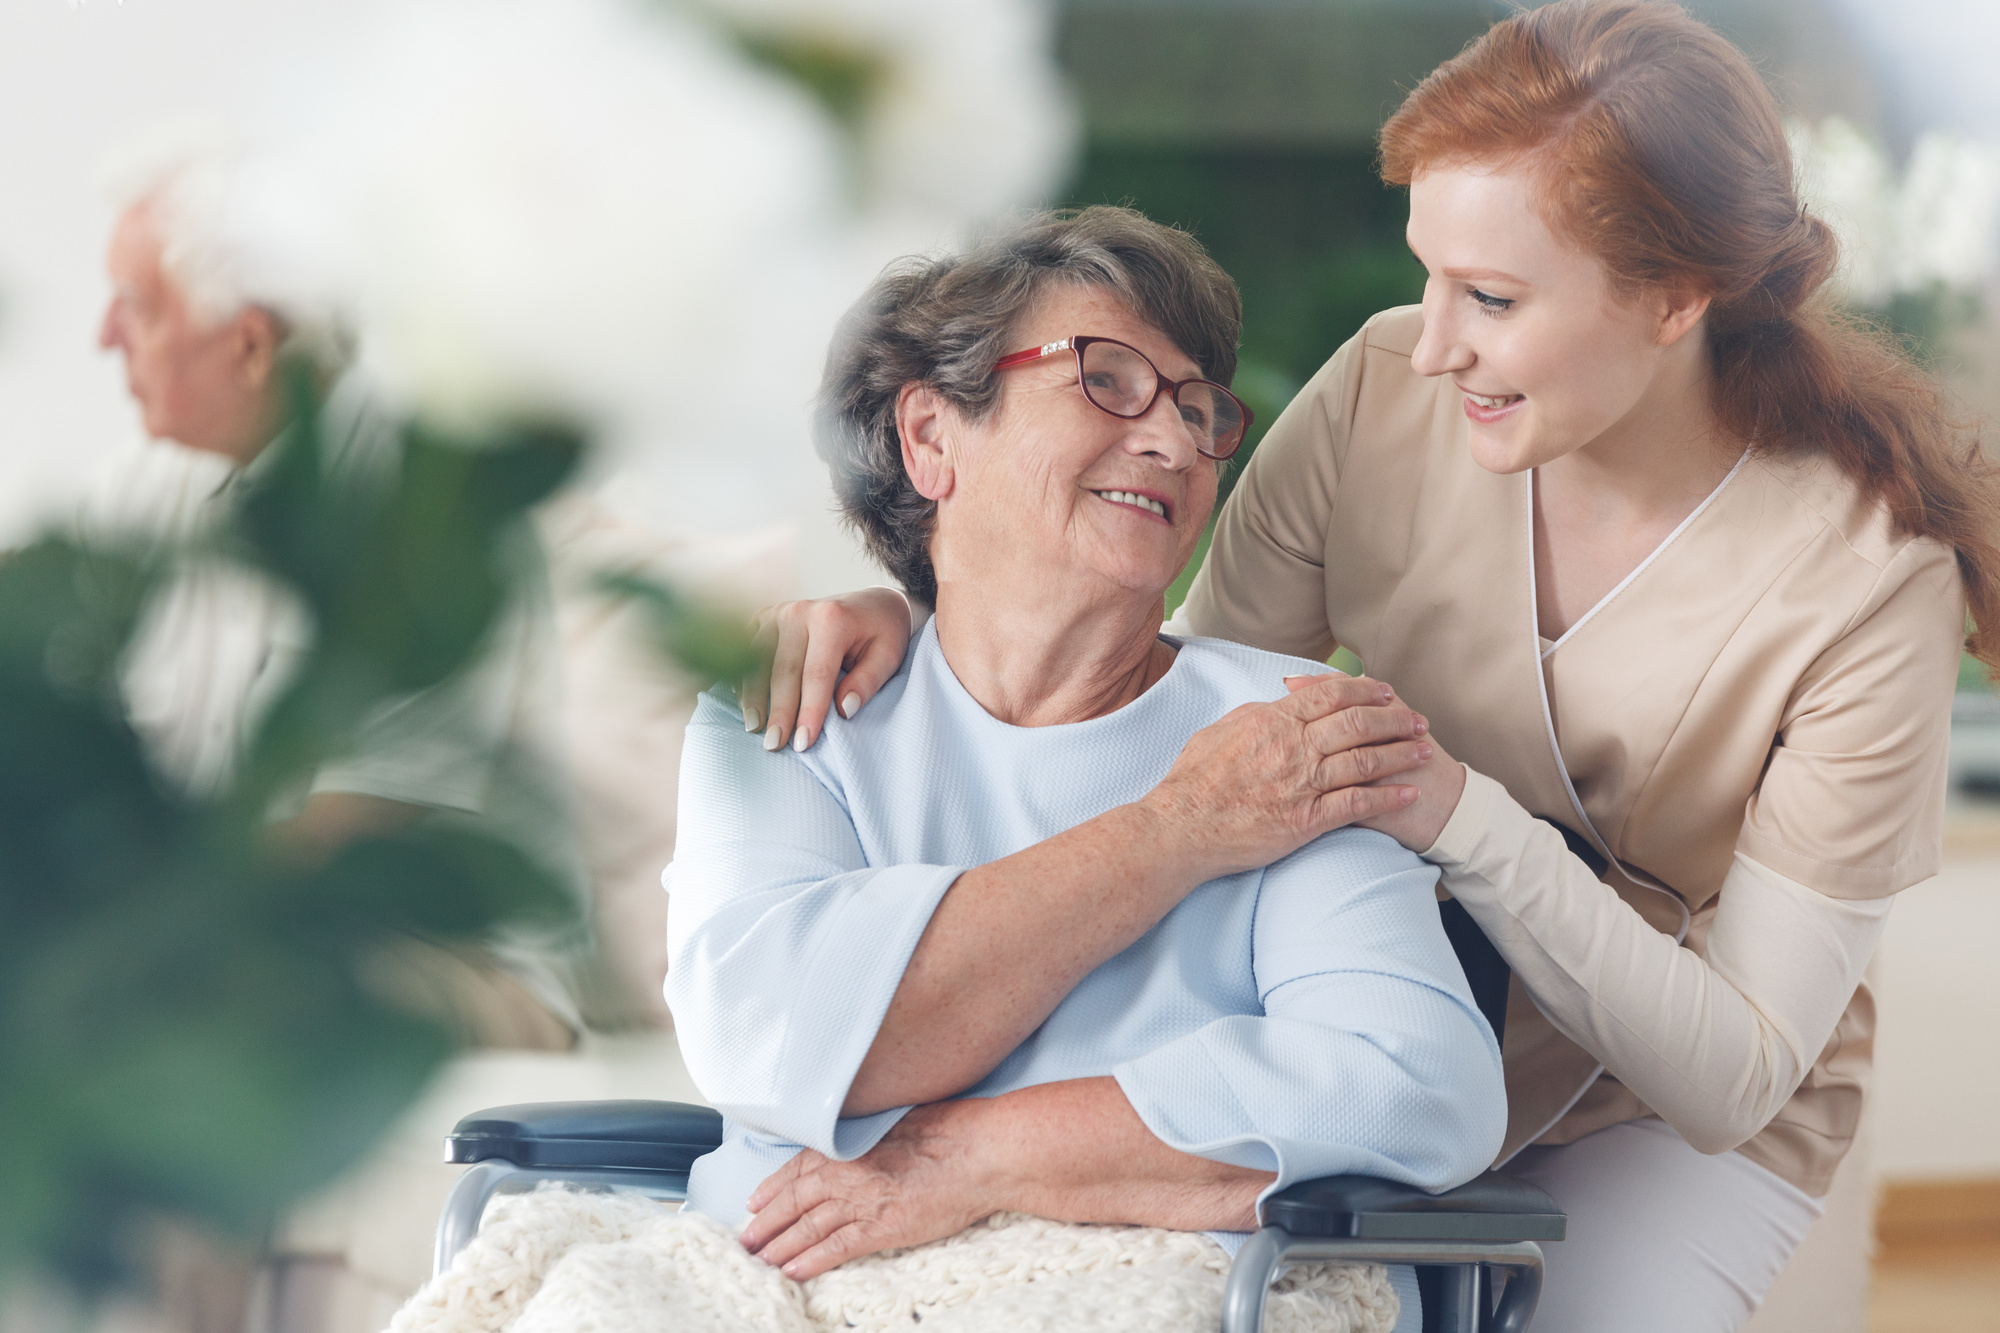 An Older Female Patient in a Wheelchair Being Assisted and Encouraged by a Home Healthcare Aide